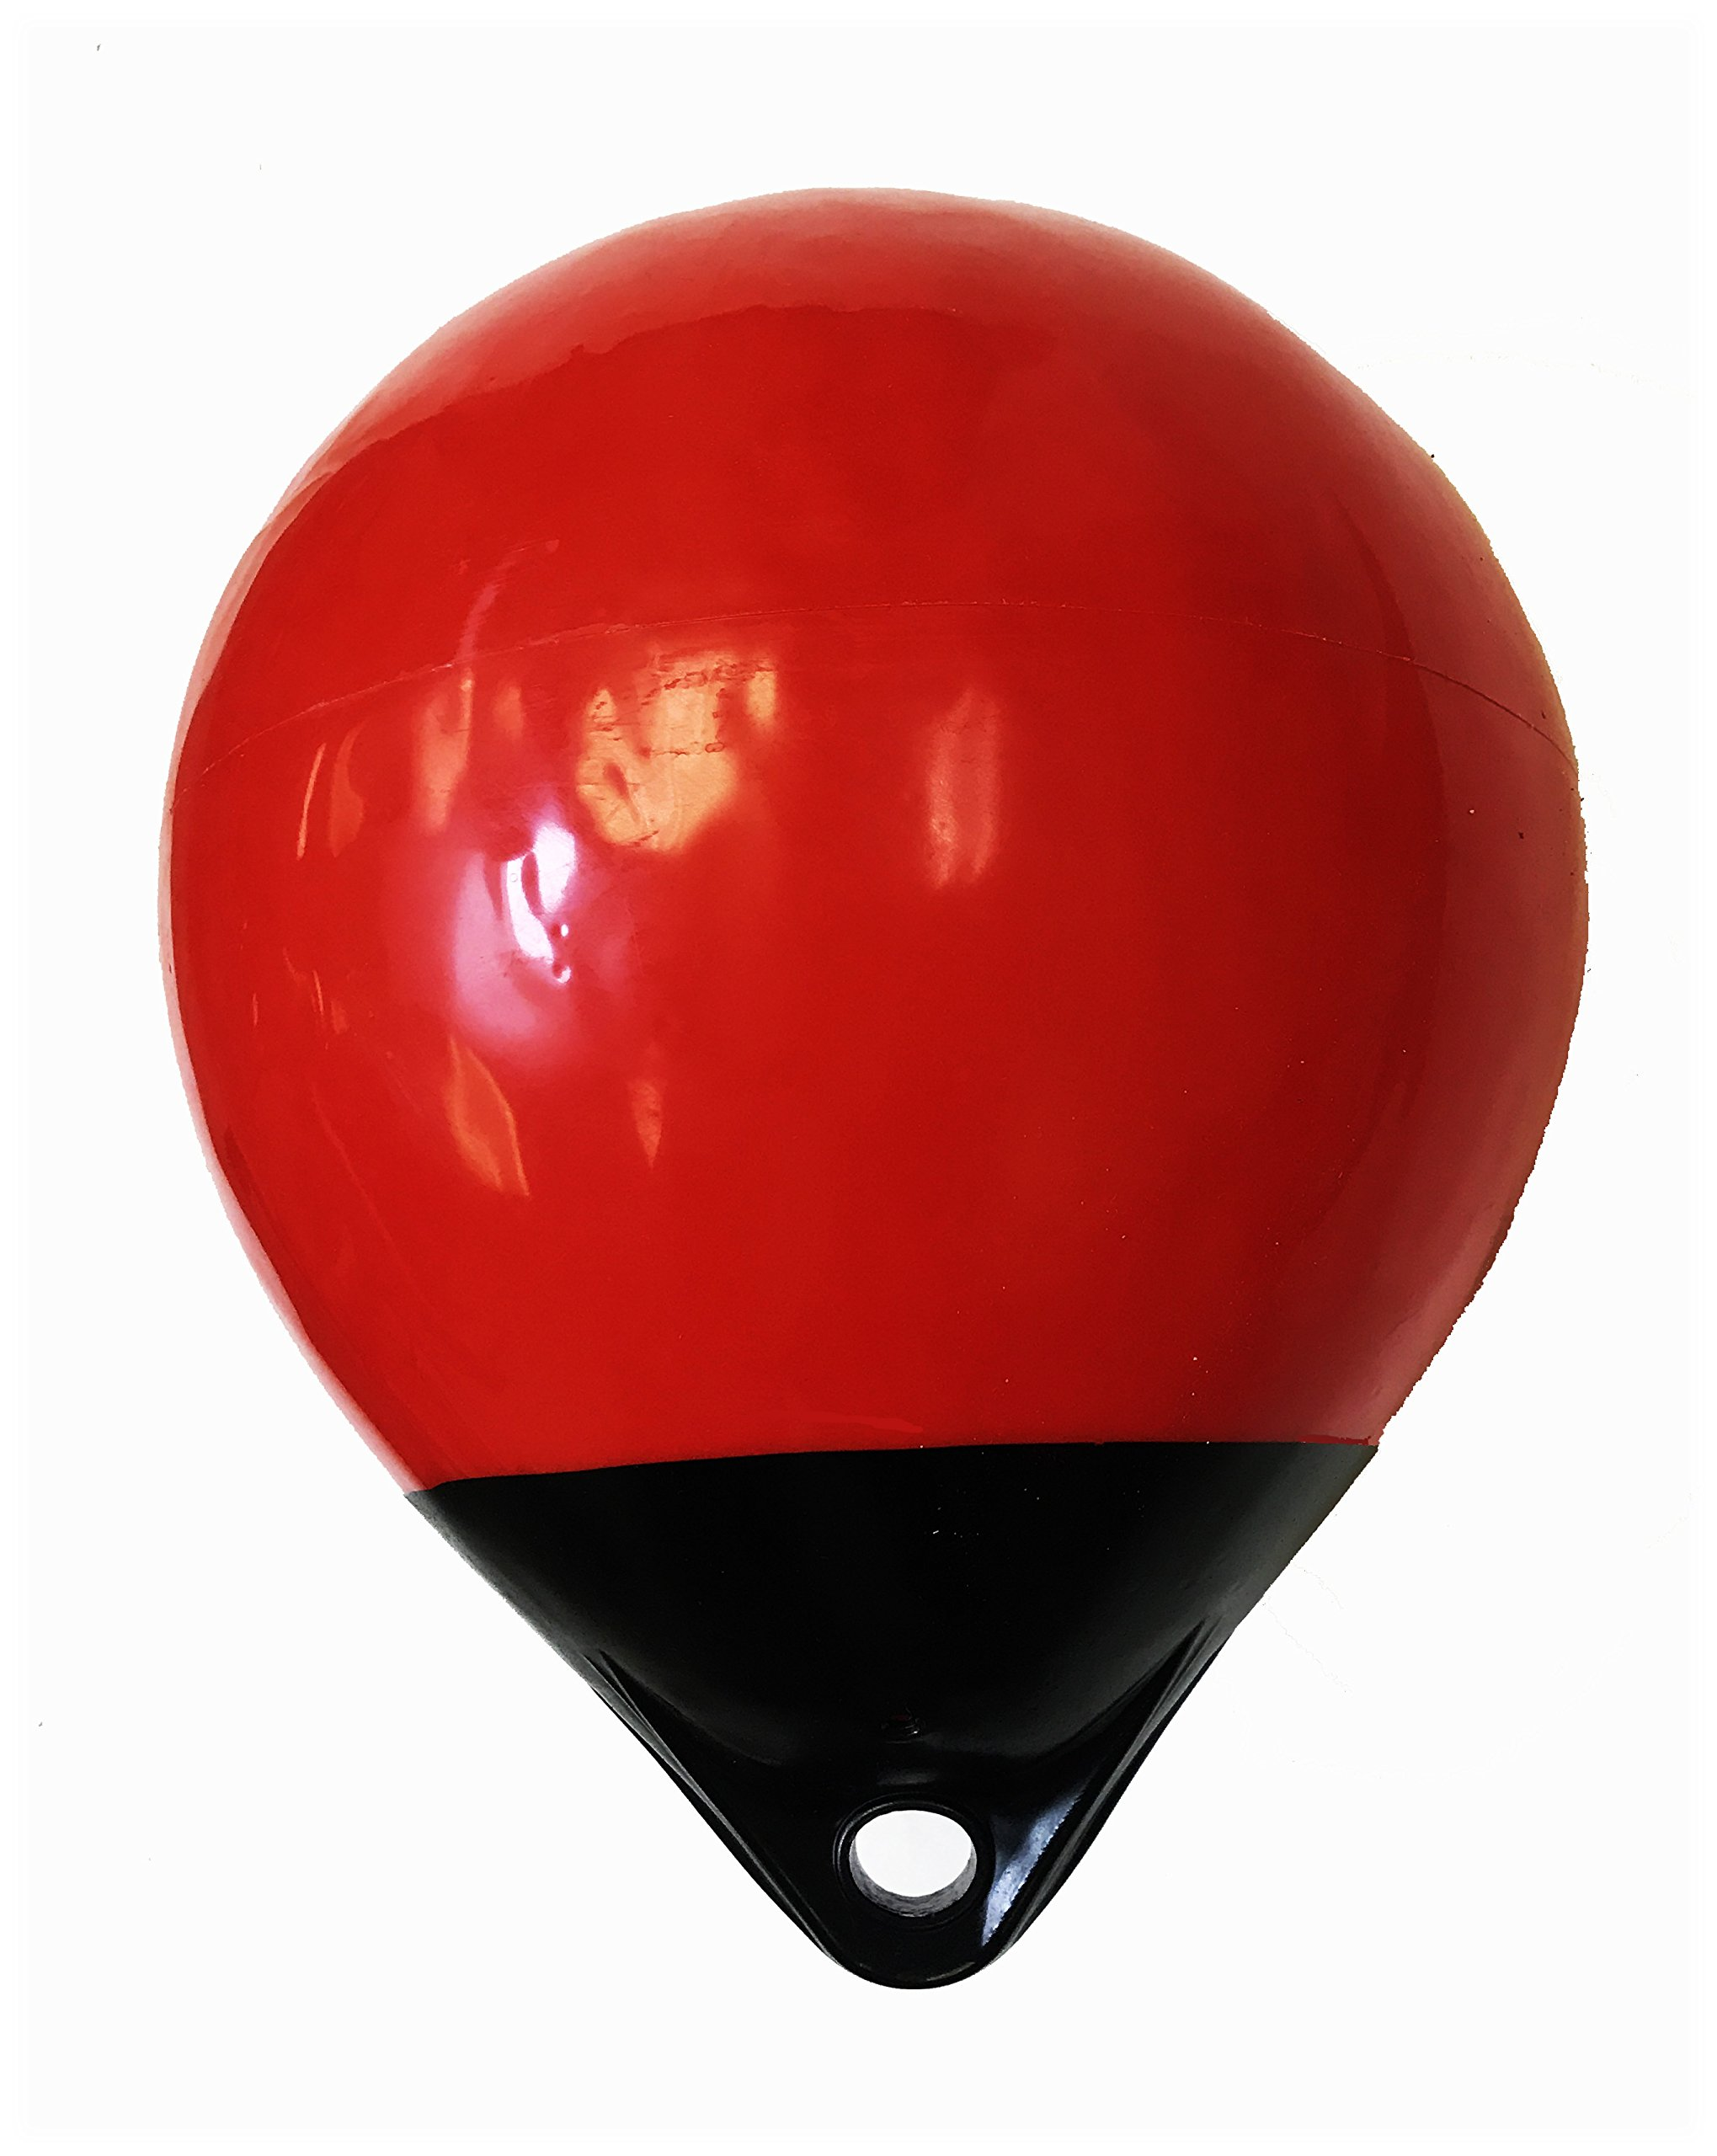 KUFA 12'' Diameter (Inflated Size: 12'' x 15'') Mark Buoy Mooring Buoy Anchor Lift Buoy A30, Red/Black